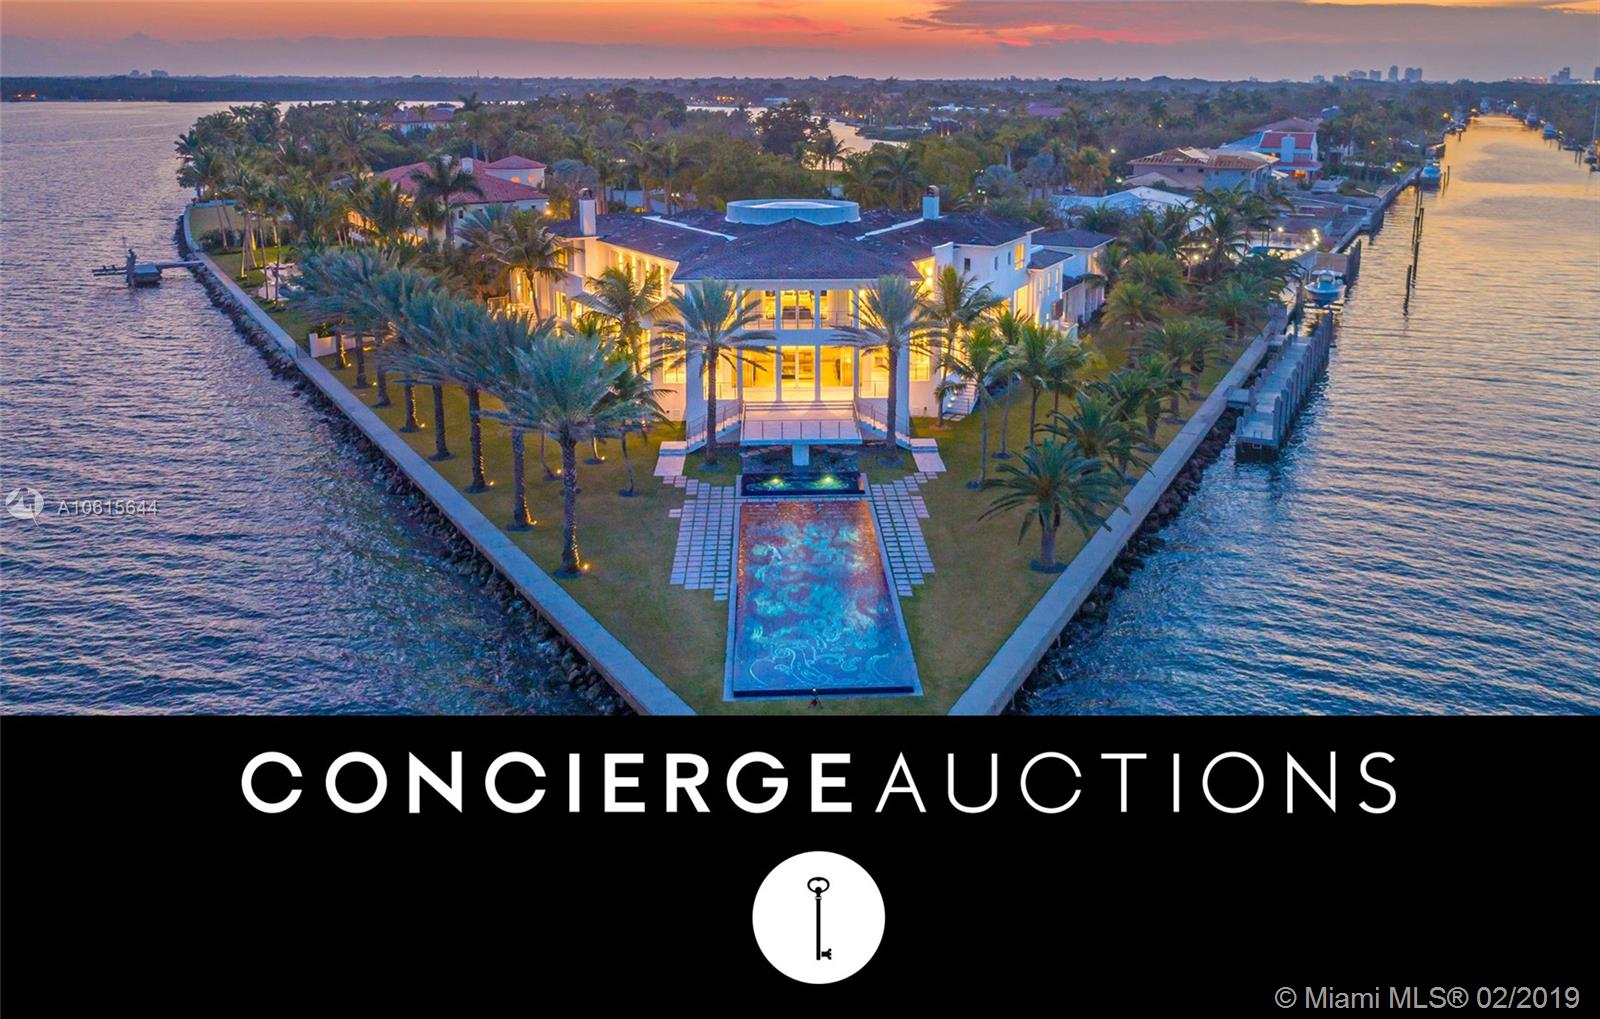 Auction. Bid 3/19-3/22. Currently $68M. Selling Without Reserve. Showings Daily 1-4Pm Est By Appointment. Preview Event 2/26 4-7 Pm Est. Beyond The Contemporary Gates Rests A Waterfront Oasis, A Playground Of Sun-Filled Days And Glamorous Nights. Imagine Glittering Formal Galas Spilling From The Magnificent Chandelier-Lit Foyer To The Sleek Interior Bar And Beyond To Expansive Waterfront Terraces Overlooking Biscayne Bay To The Atlantic Ocean. At The Point Of The Estate With Water On Two Sides, 41 Arvida Parkway Is A Stunning Location Upon Which To Host Magnificent Sunset Alfresco Cocktails And Poolside Soir+Â-¬Es Beside Estudio Arqu+Â-¬ Designed Pool. Surrounded By 574 Feet Of Water With A Private Dock On A Canal Nearest Biscayne Bay, The Largest Of Yachts May Be At Sea In Only Minutes.